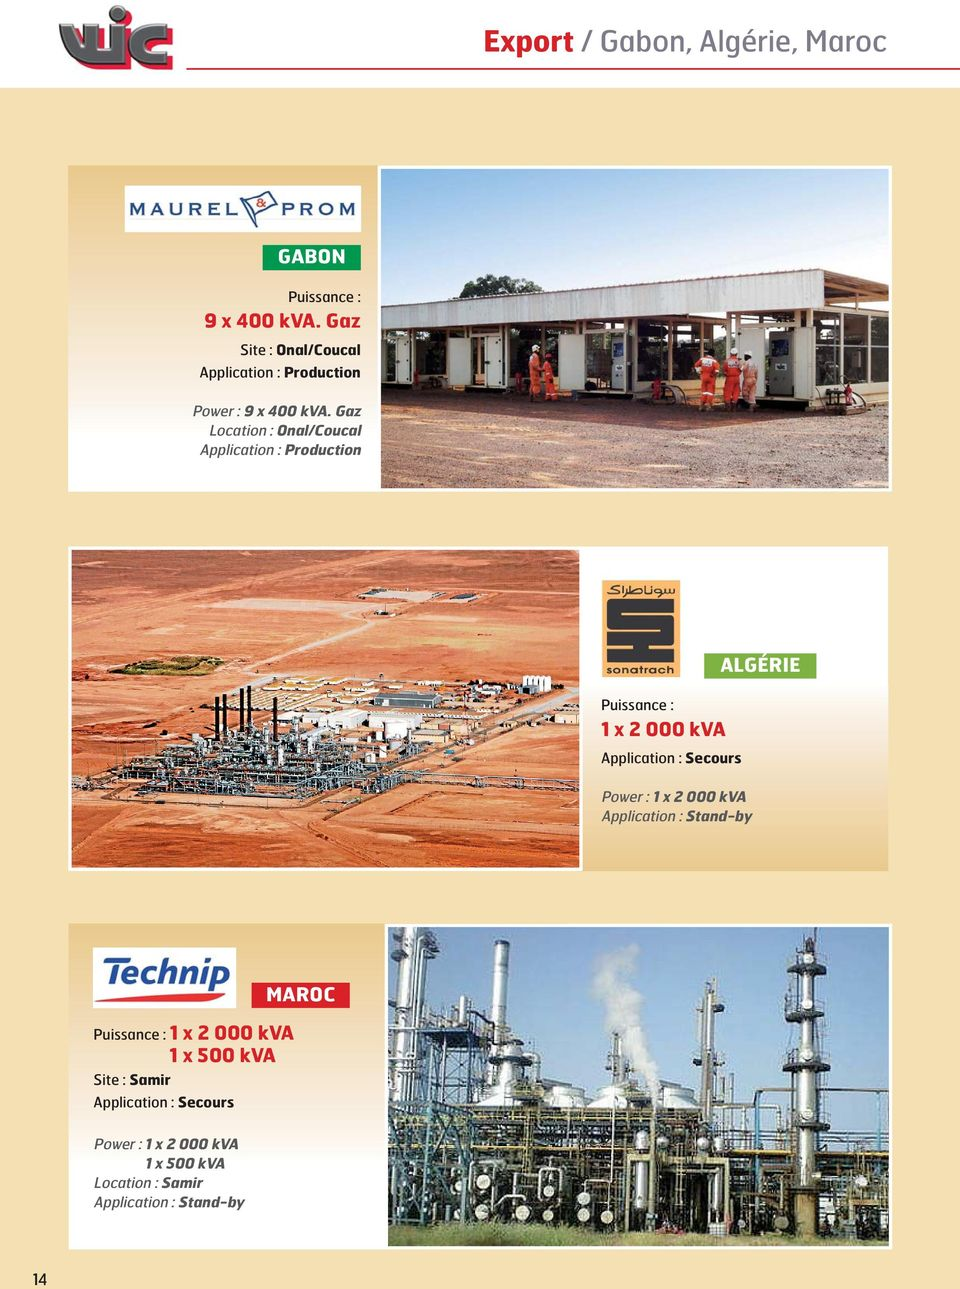 Gaz Location : Onal/Coucal Application : Production ALGÉRIE 1 x 2 000 kva